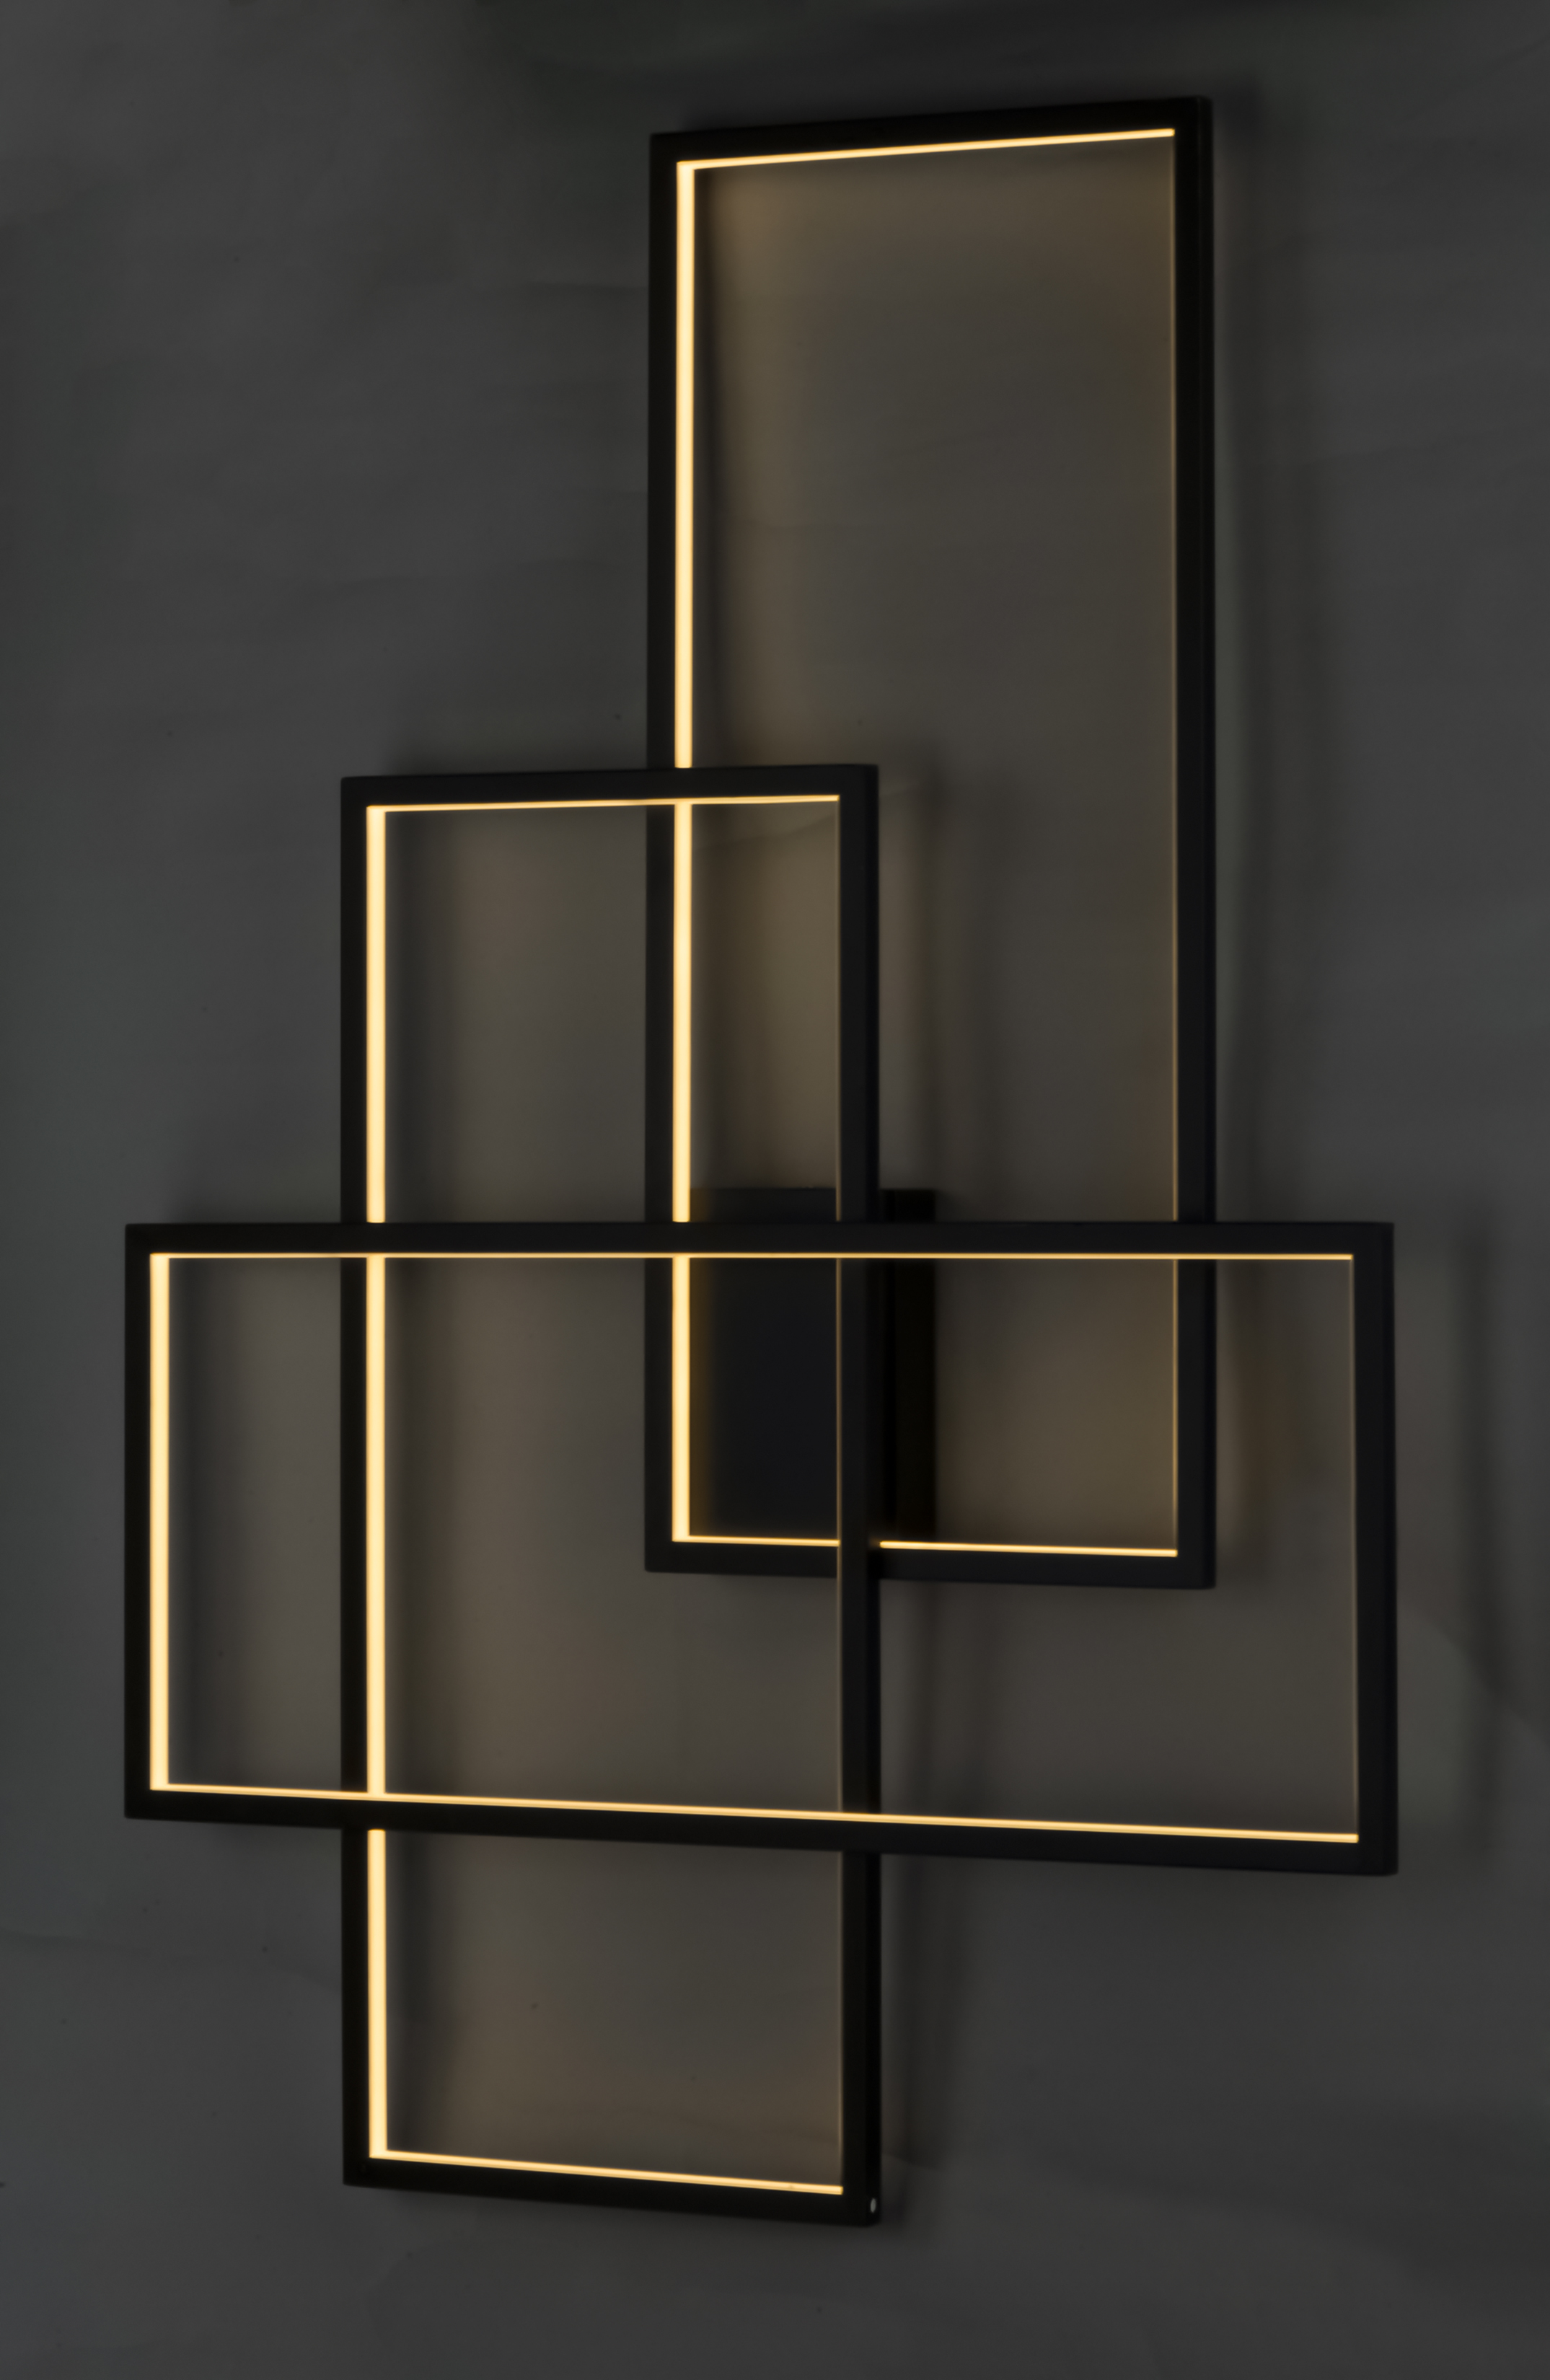 Converge led wall sconce wall sconce maxim lighting converge converge led wall sconce amipublicfo Gallery